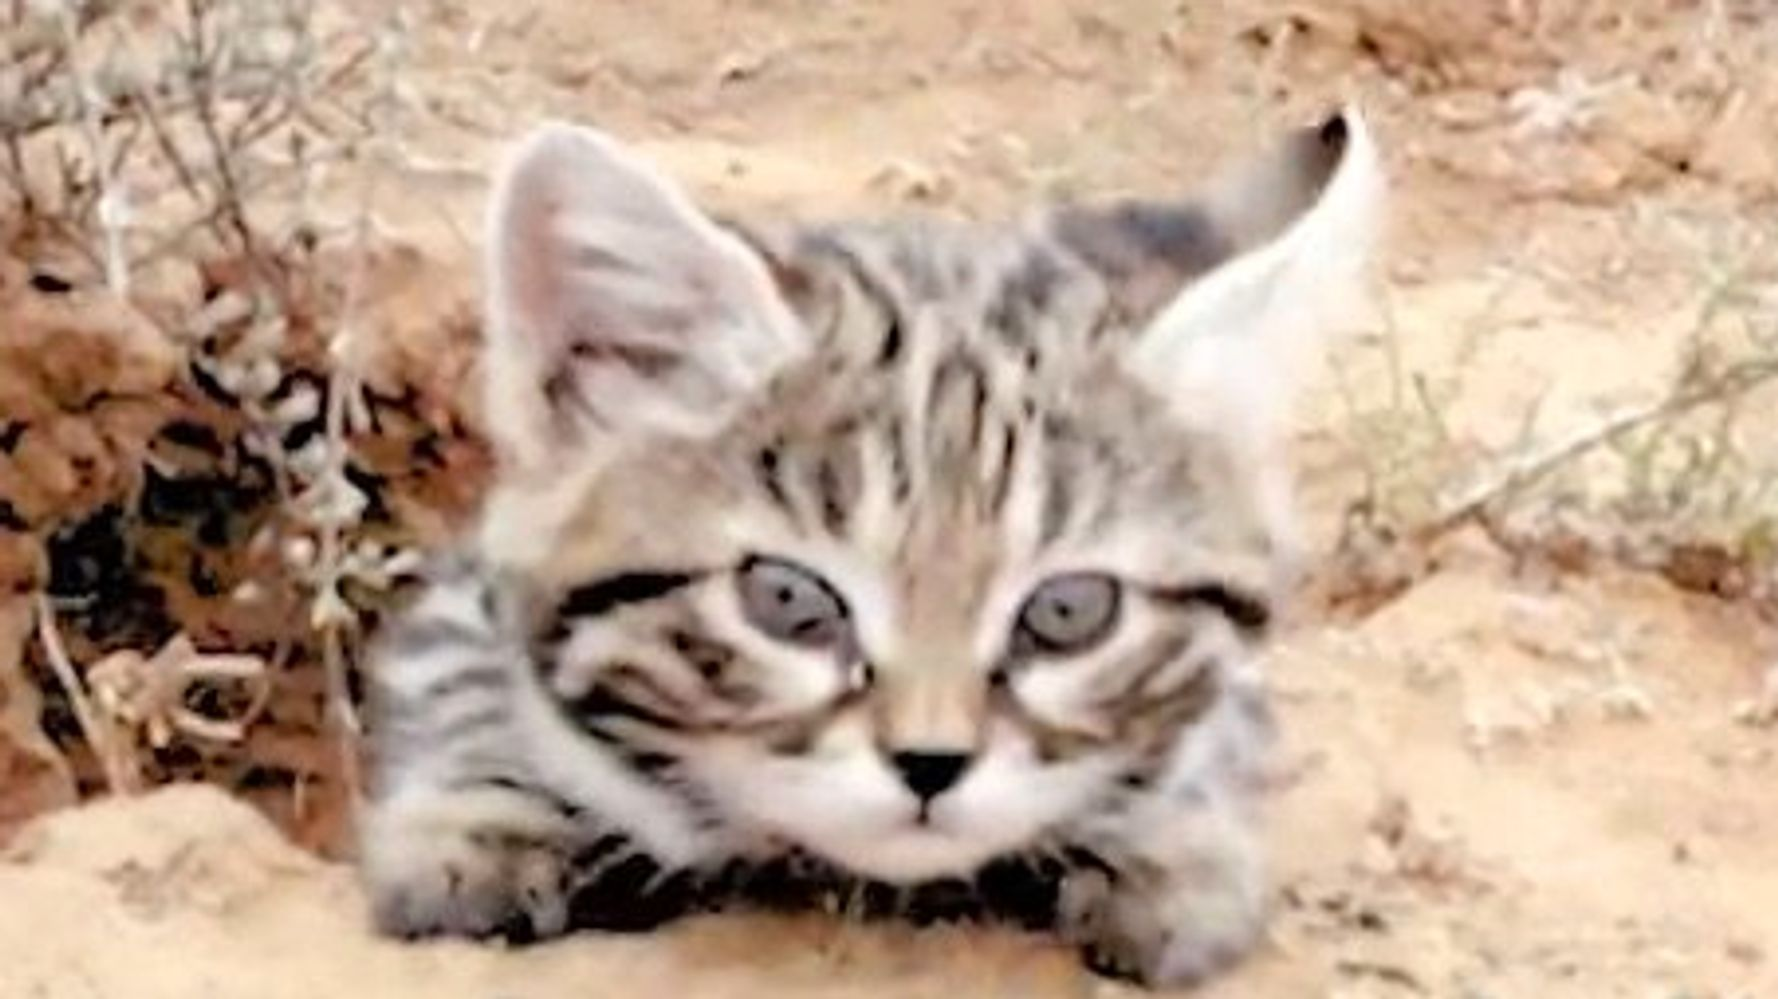 The World's Deadliest Cat Is Absolutely Adorable | HuffPost